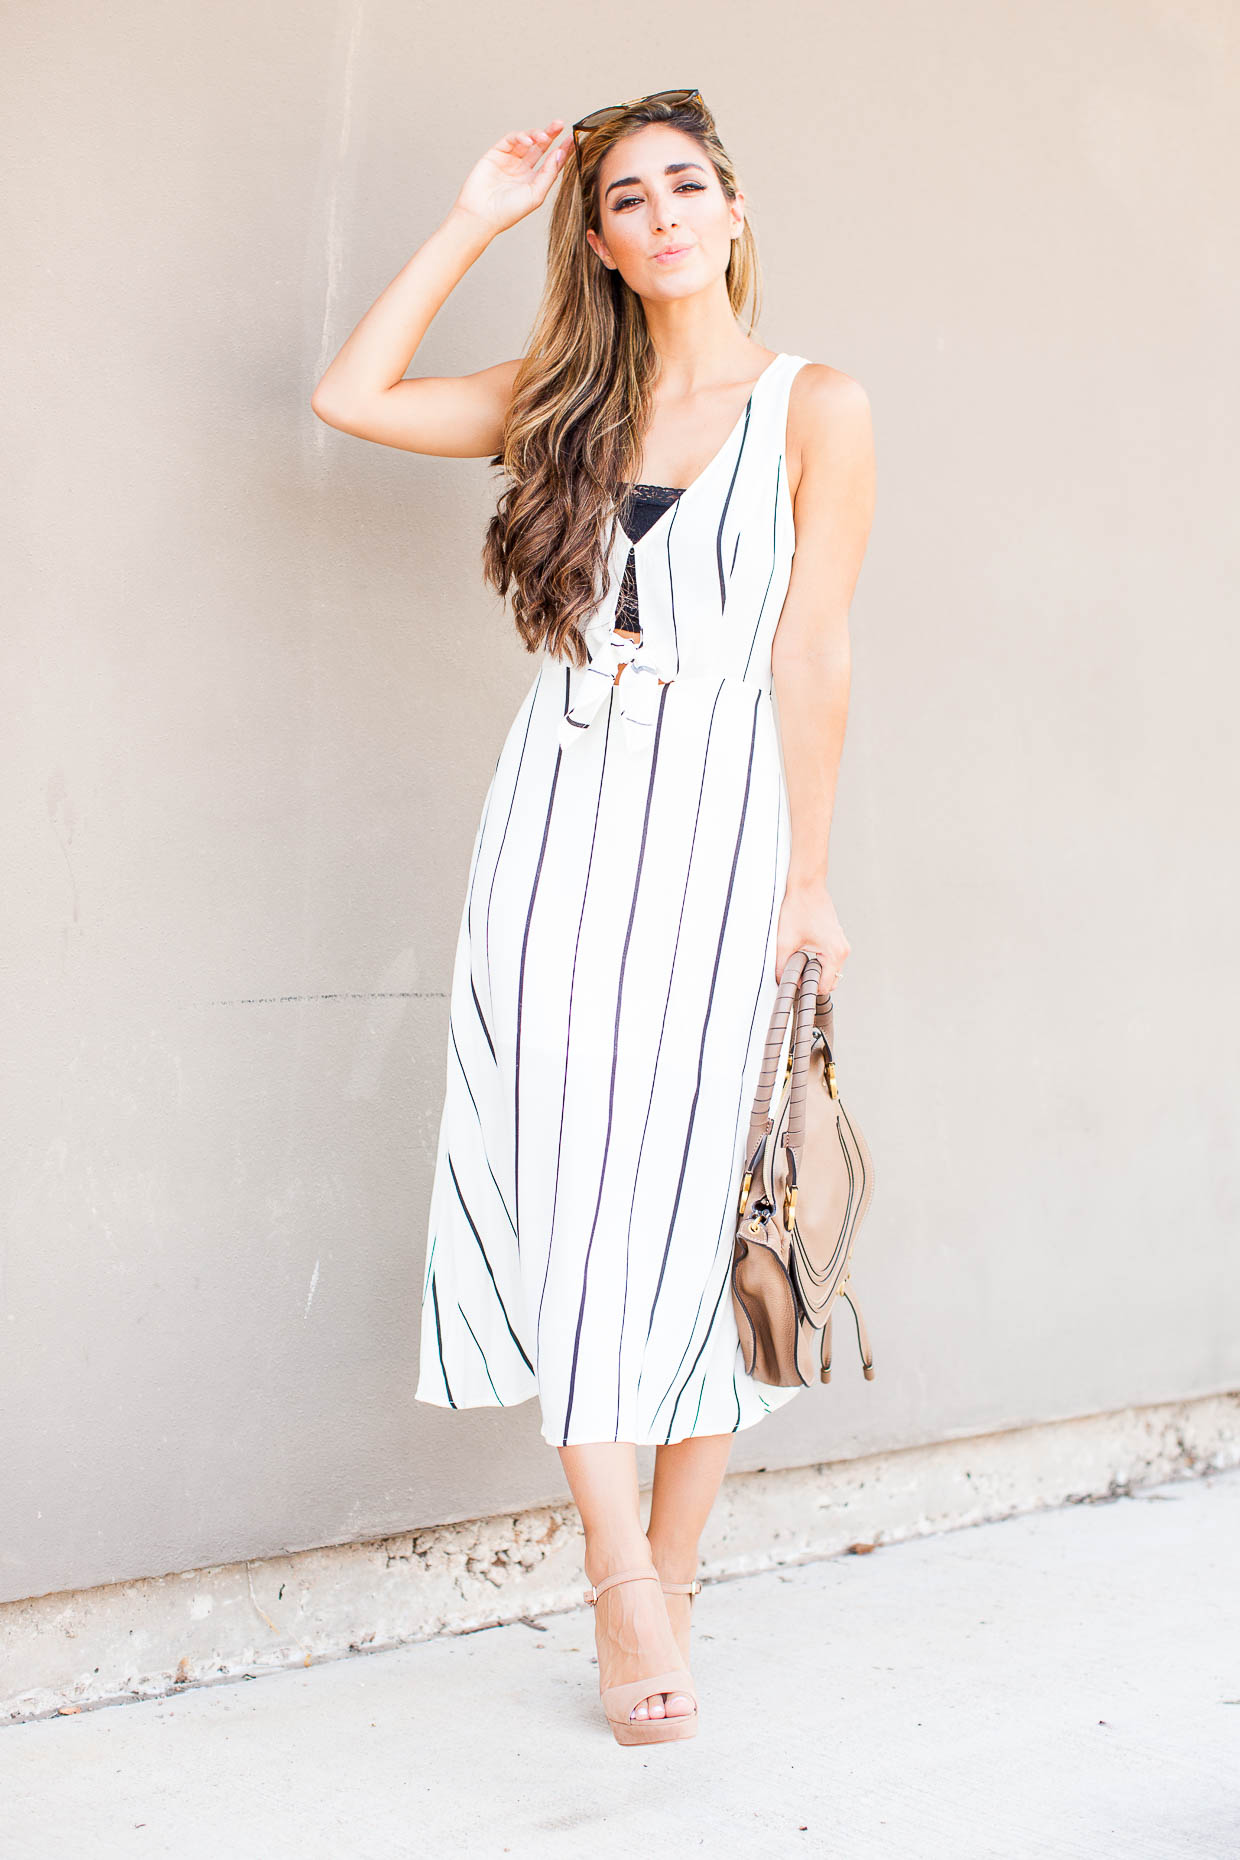 The Darling Detail is wearing an ASTR Tie Front Midi Dress, a Free People Scalloped Lace Bandeau, with Vince Camuto 'Krysta' Sandals, Ray-Ban 'Highstreet' Sunglasses, and holding the Chloe 'Medium Marcie' Leather Satchel.